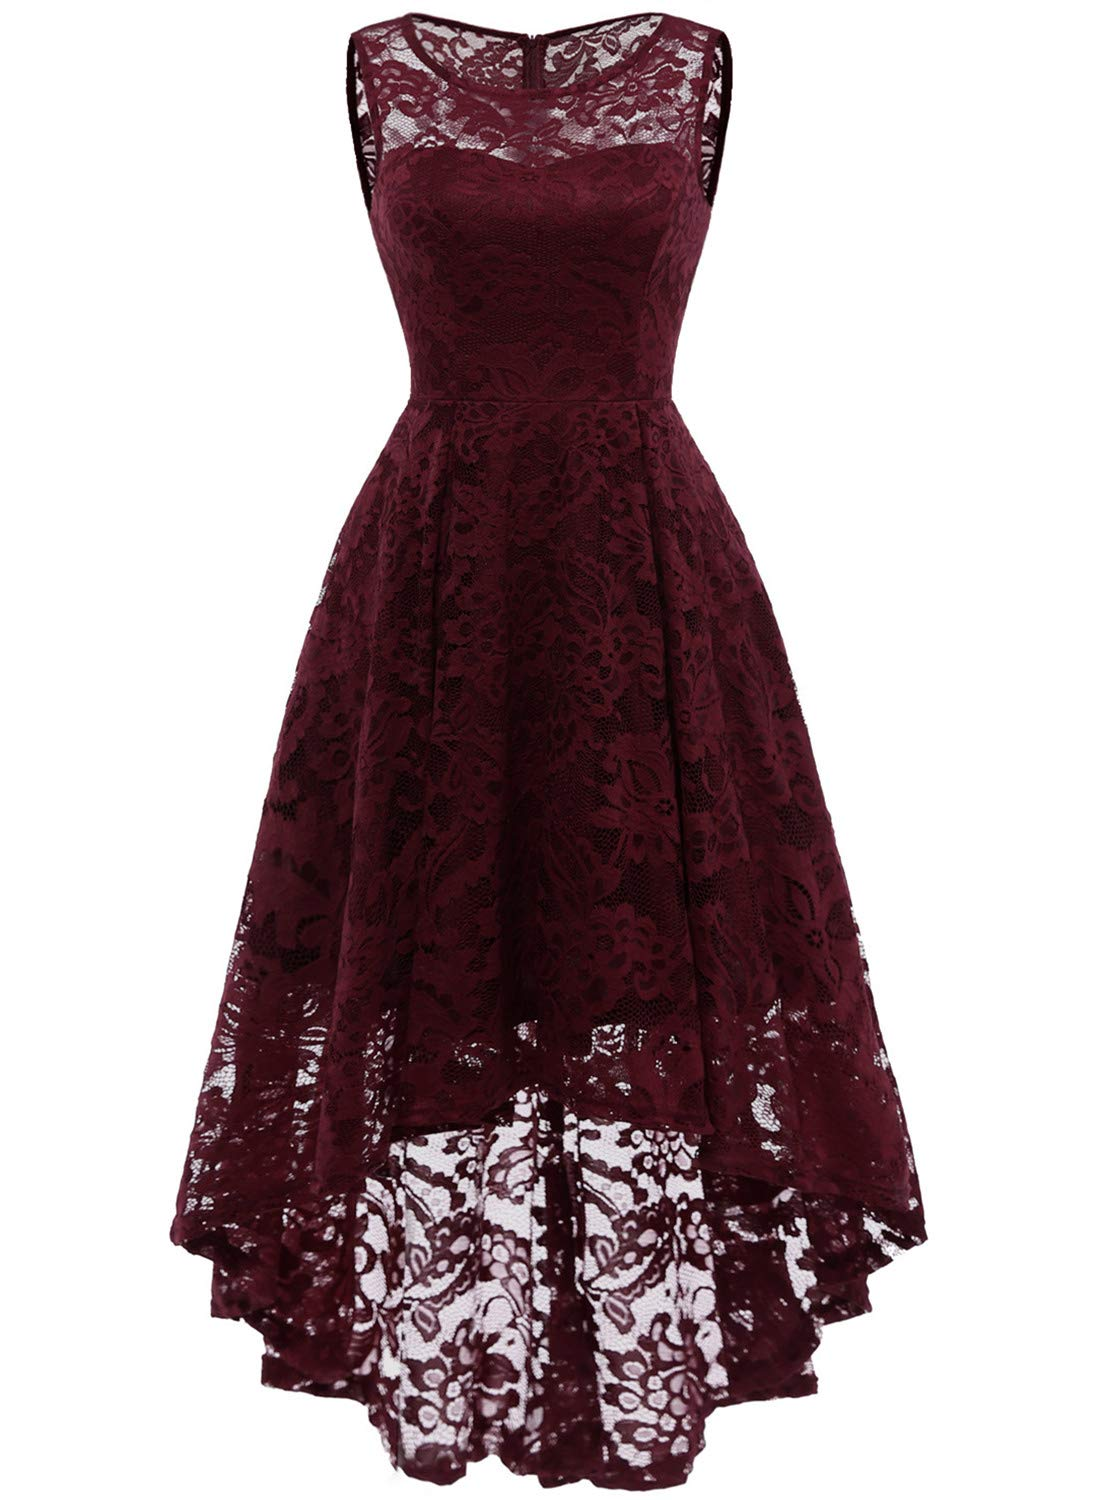 908cd960116 MUADRESS Women s Vintage Floral Lace Sleeveless Hi-Lo Cocktail Formal Swing  Dress product image